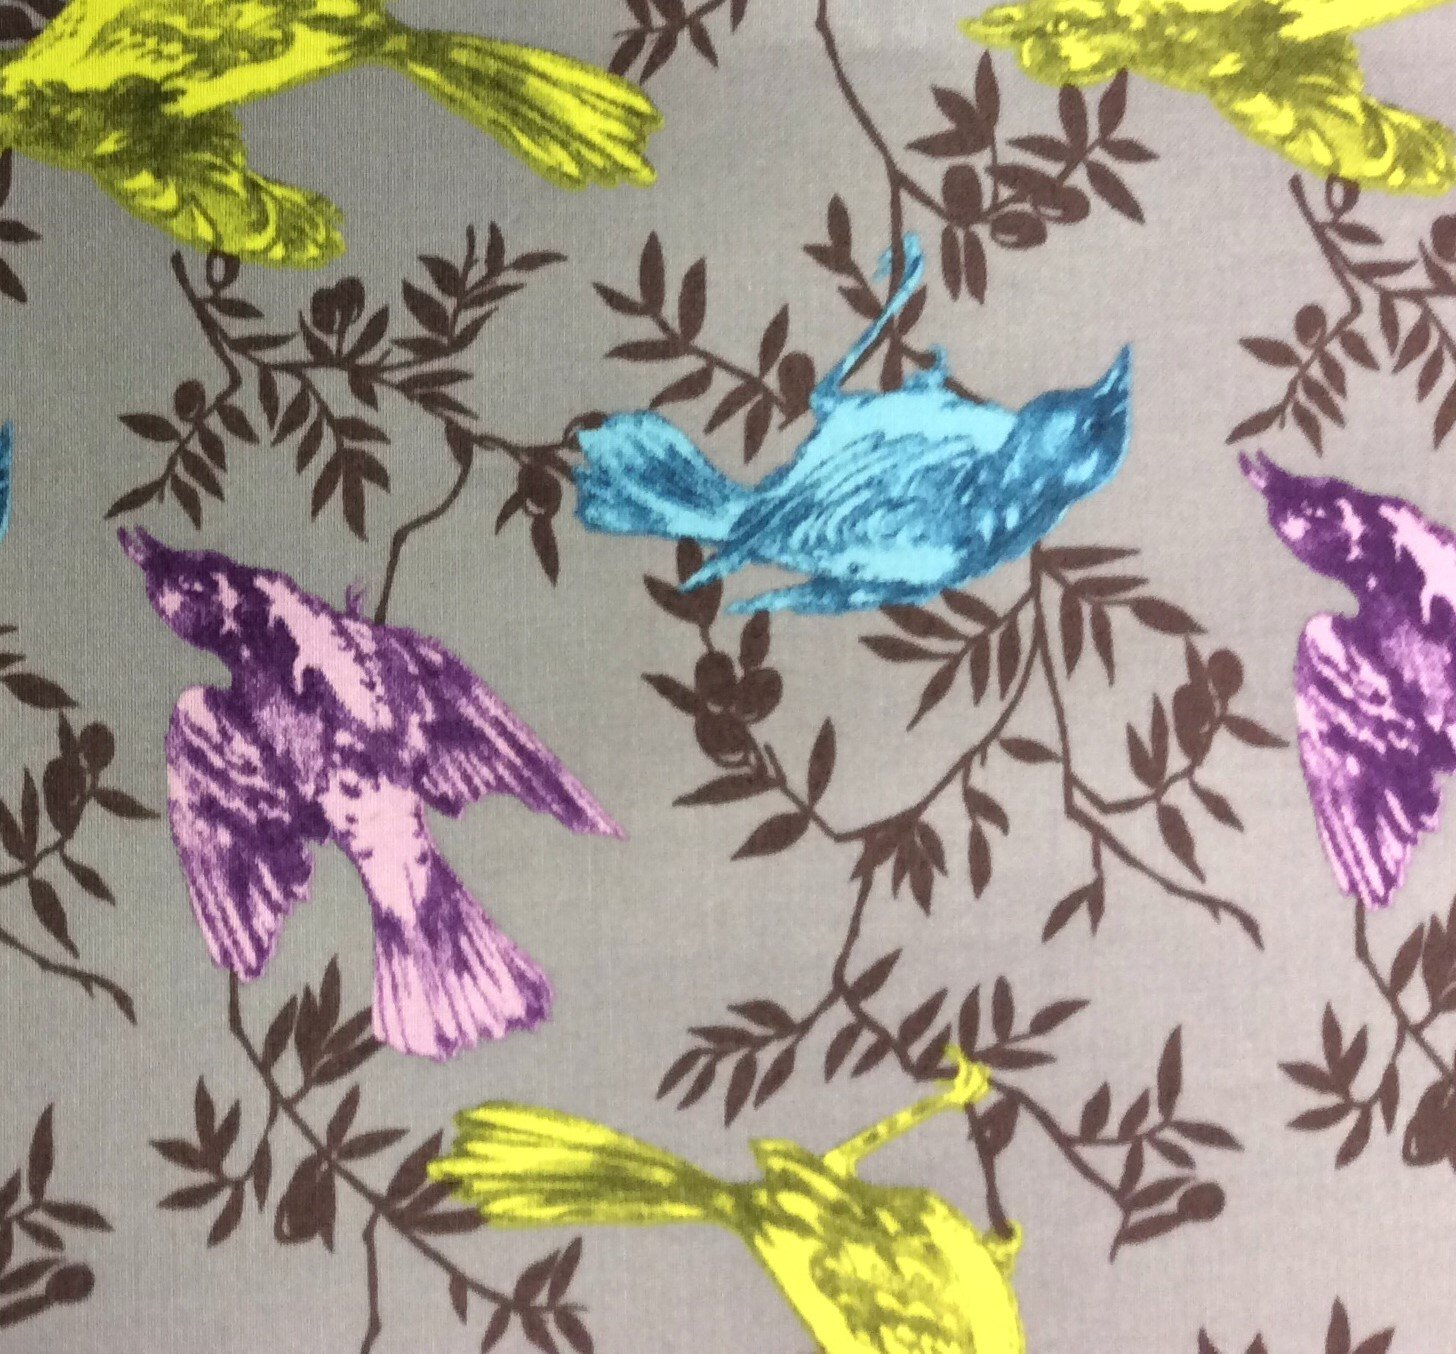 Neon Birds Sparrow Leaves Branches Spring Aviary Cotton Quilting Fabric FT49